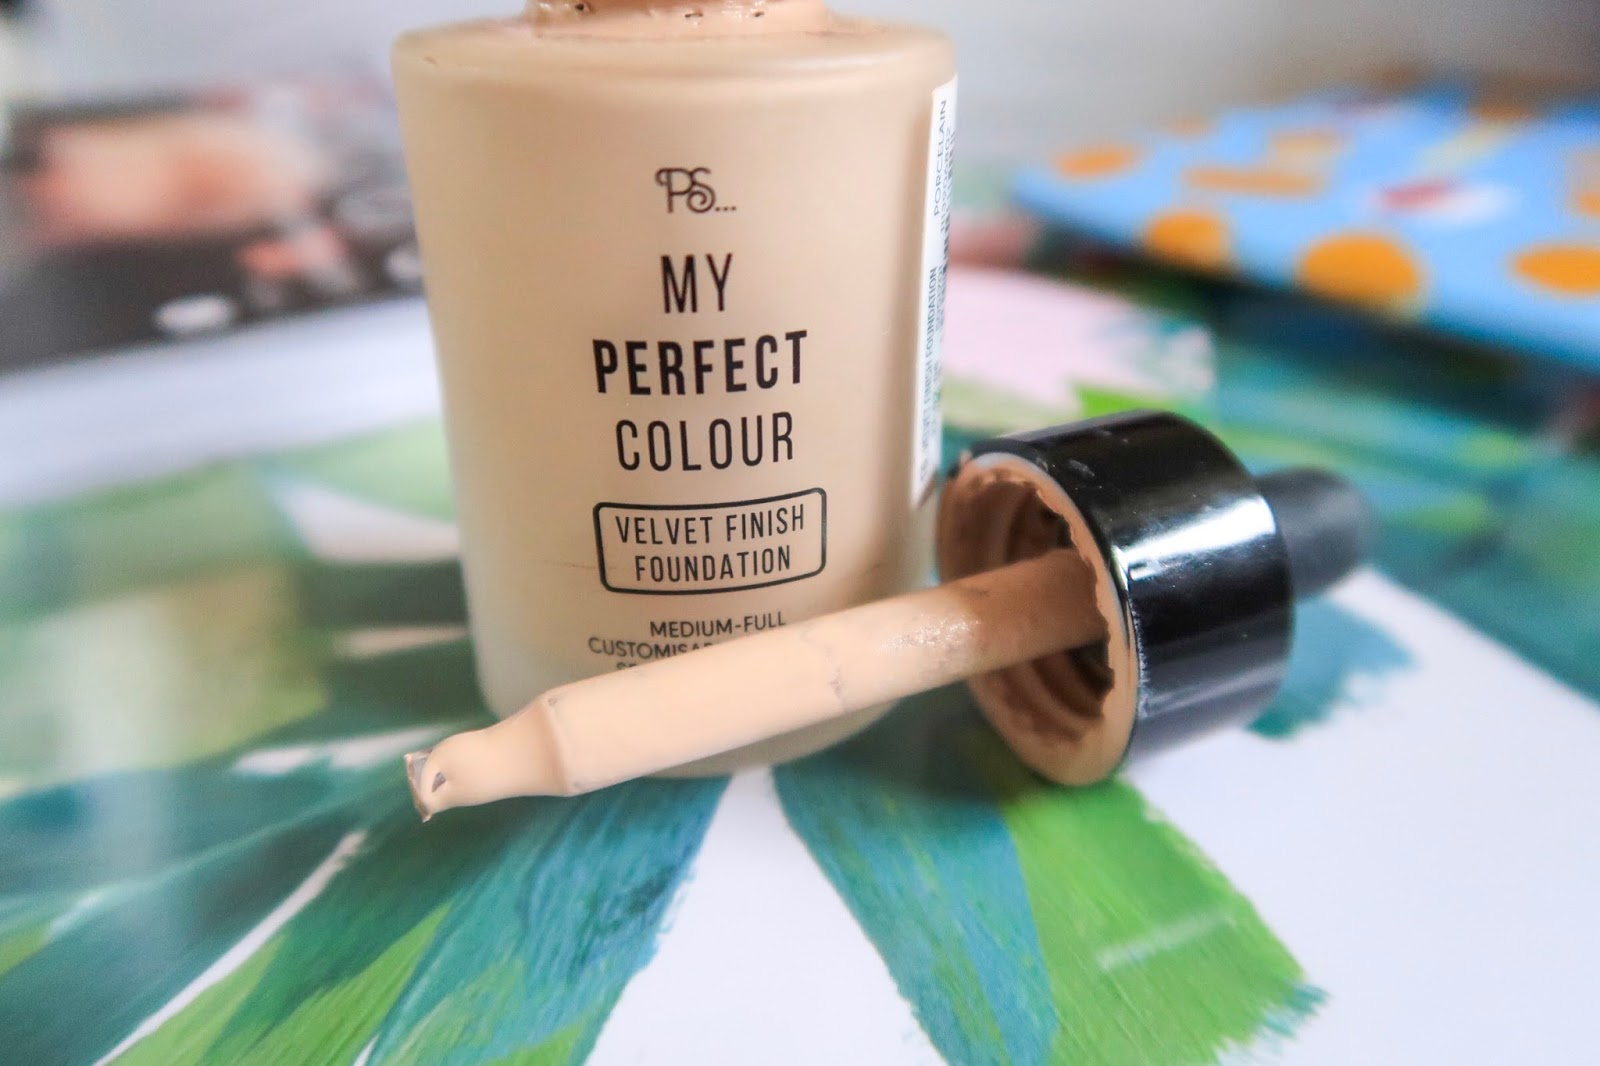 primark my perfect colour velevt finish foundation with dropper